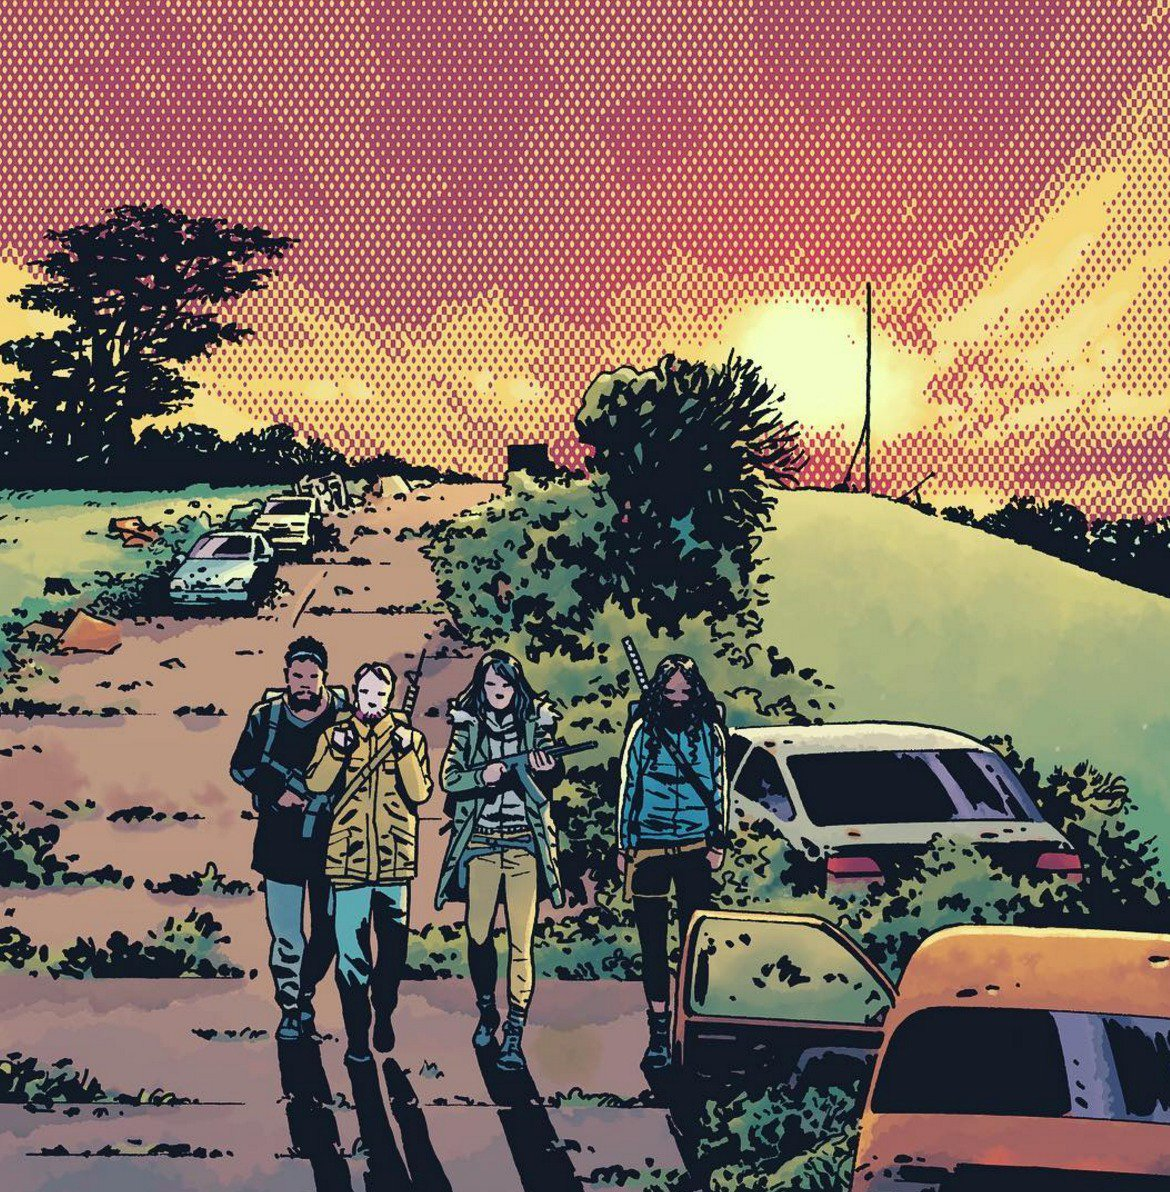 Get the entire cover and details for #TheWalkingDead Issue #170:  http:// bit.ly/170Cover  &nbsp;  <br>http://pic.twitter.com/4m82xeTzWn